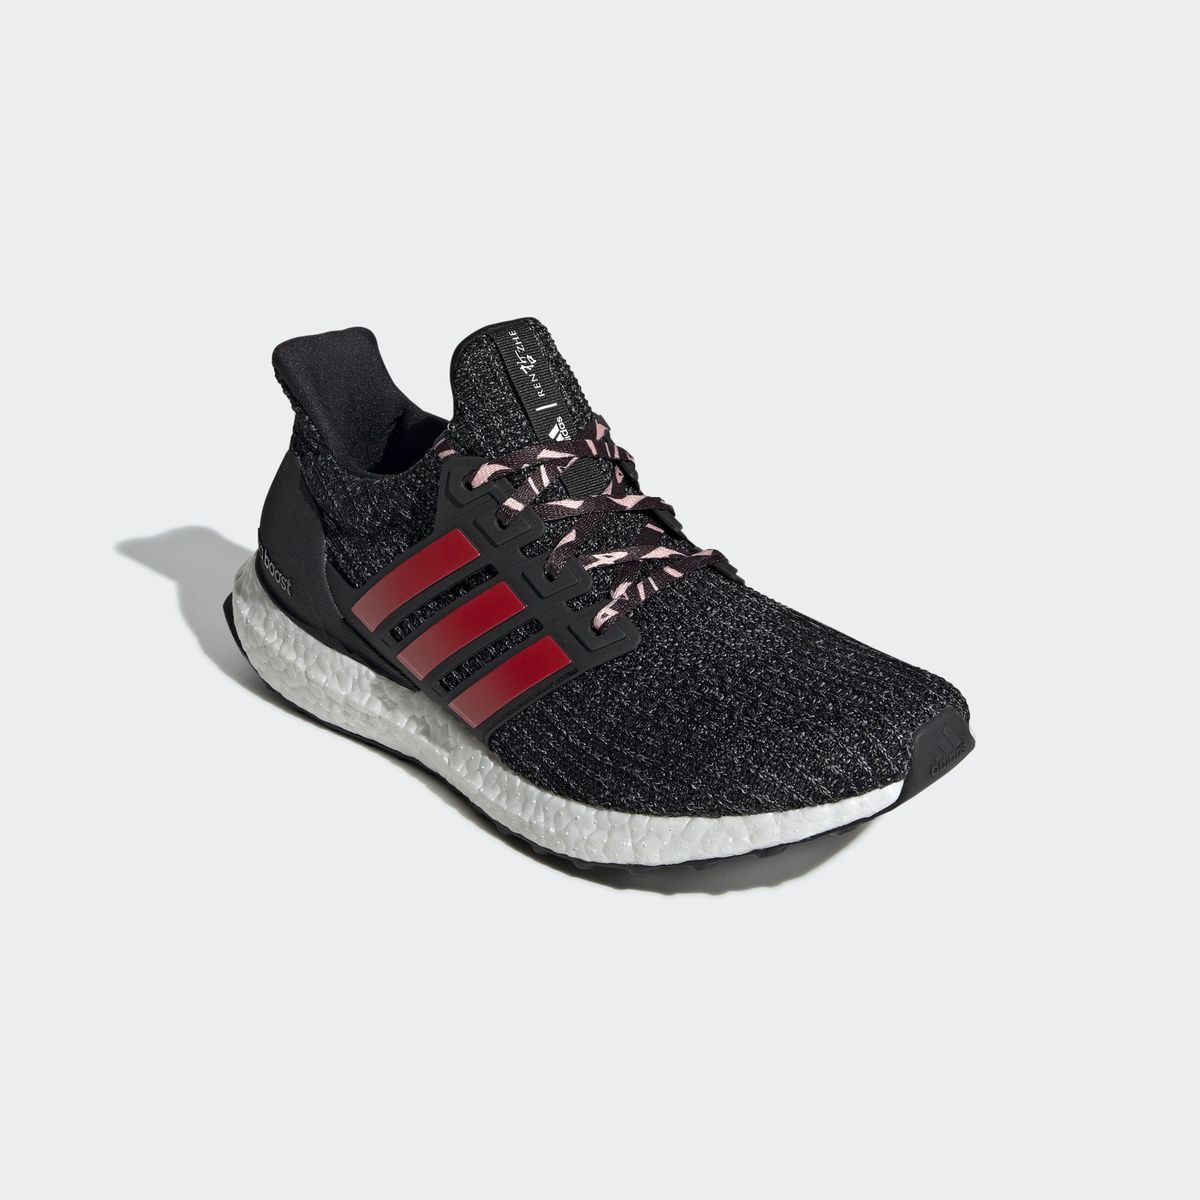 149c631d3 Baskets Chaussure Ultraboost   Products   Chaussure basket ...